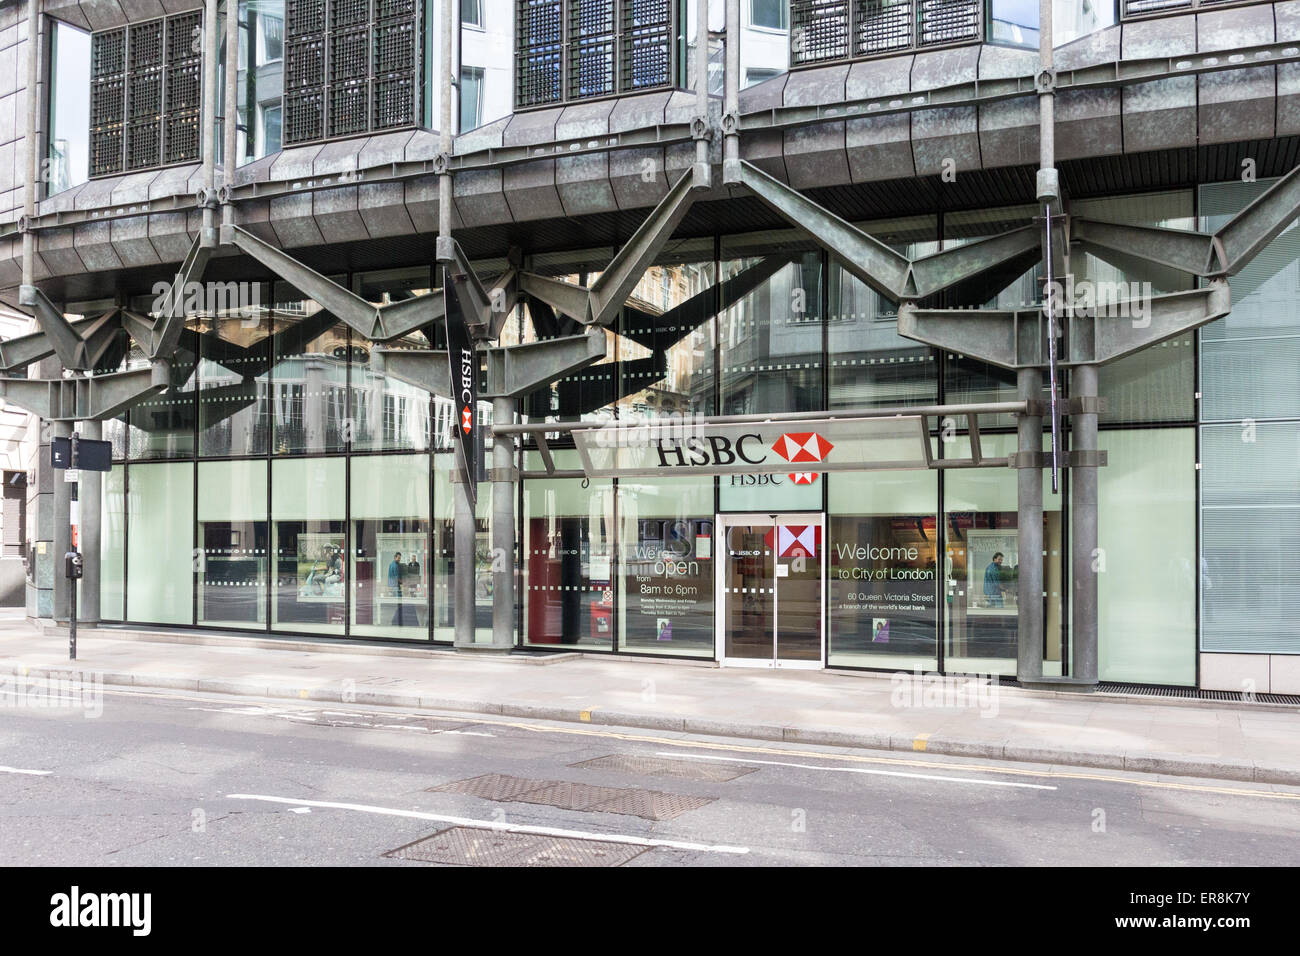 HSBC bank on 60 Queen Victoria Street London EC4N 4TR Stock Photo